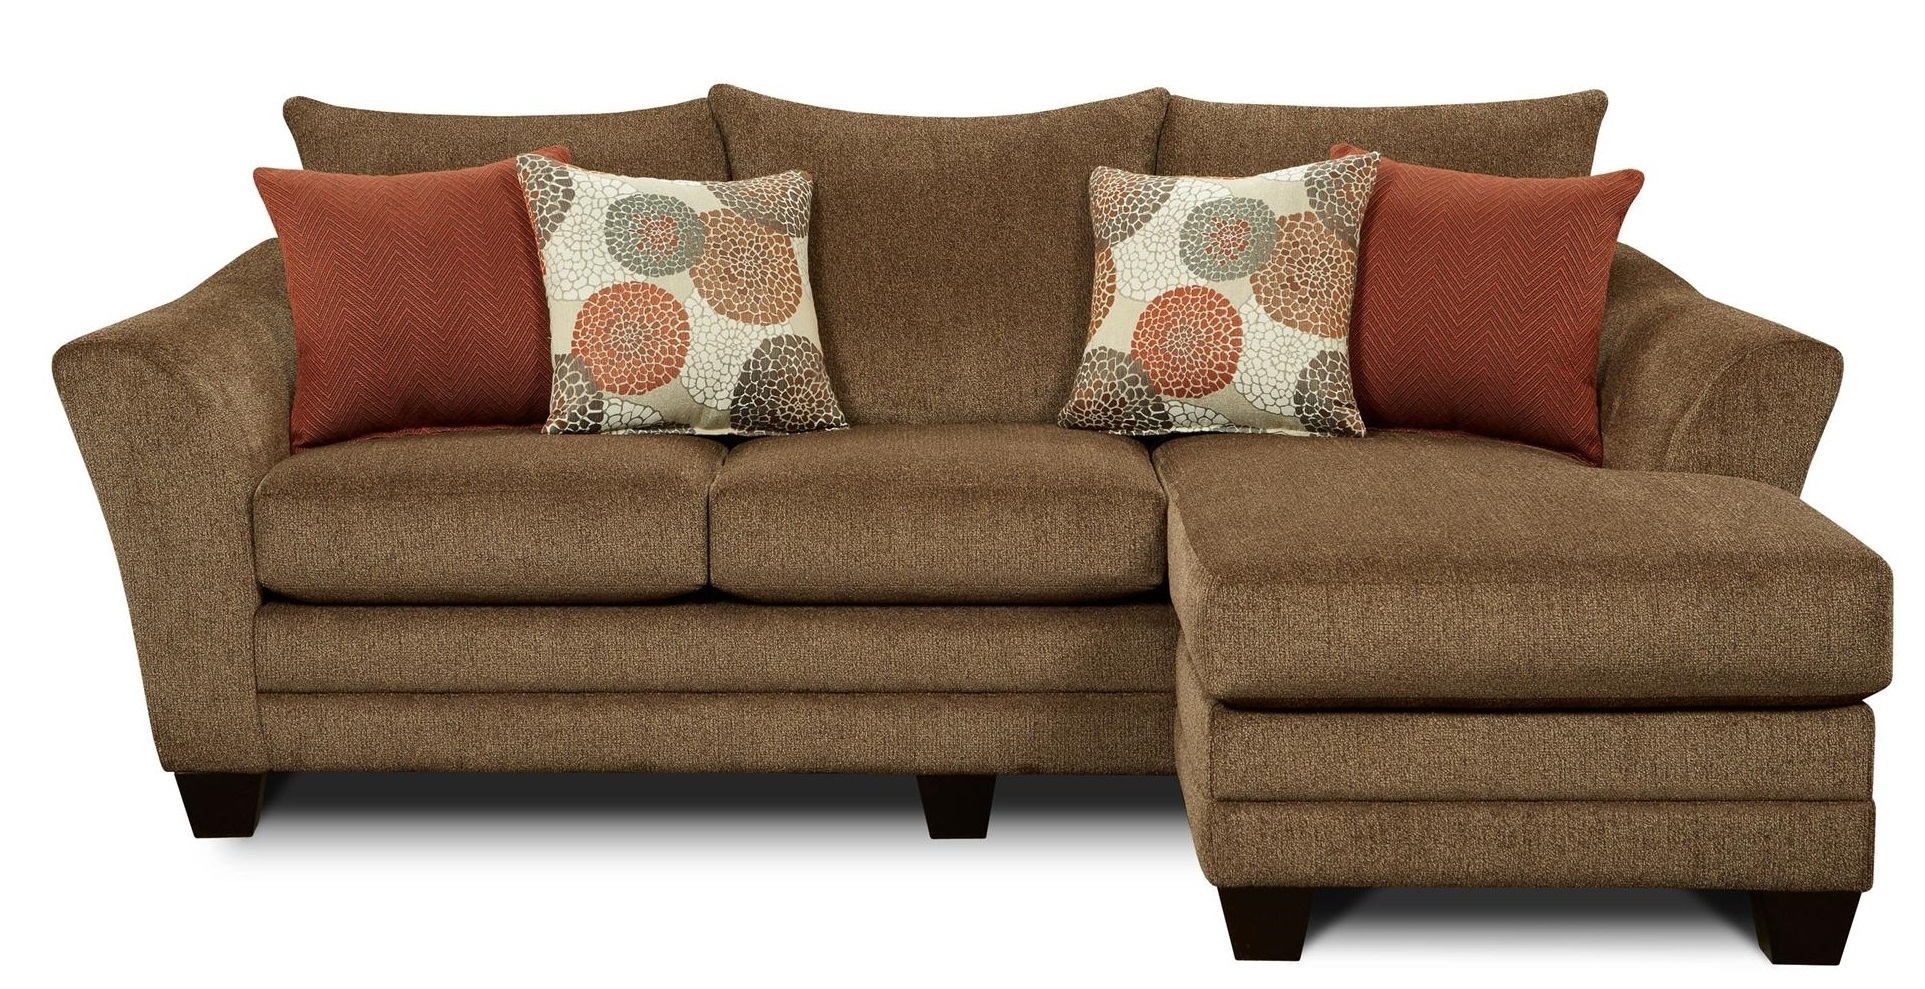 Sofas And Reclining Sofas | Crowley Furniture Stores | Lee's Summit With Kansas City Sectional Sofas (Image 9 of 10)